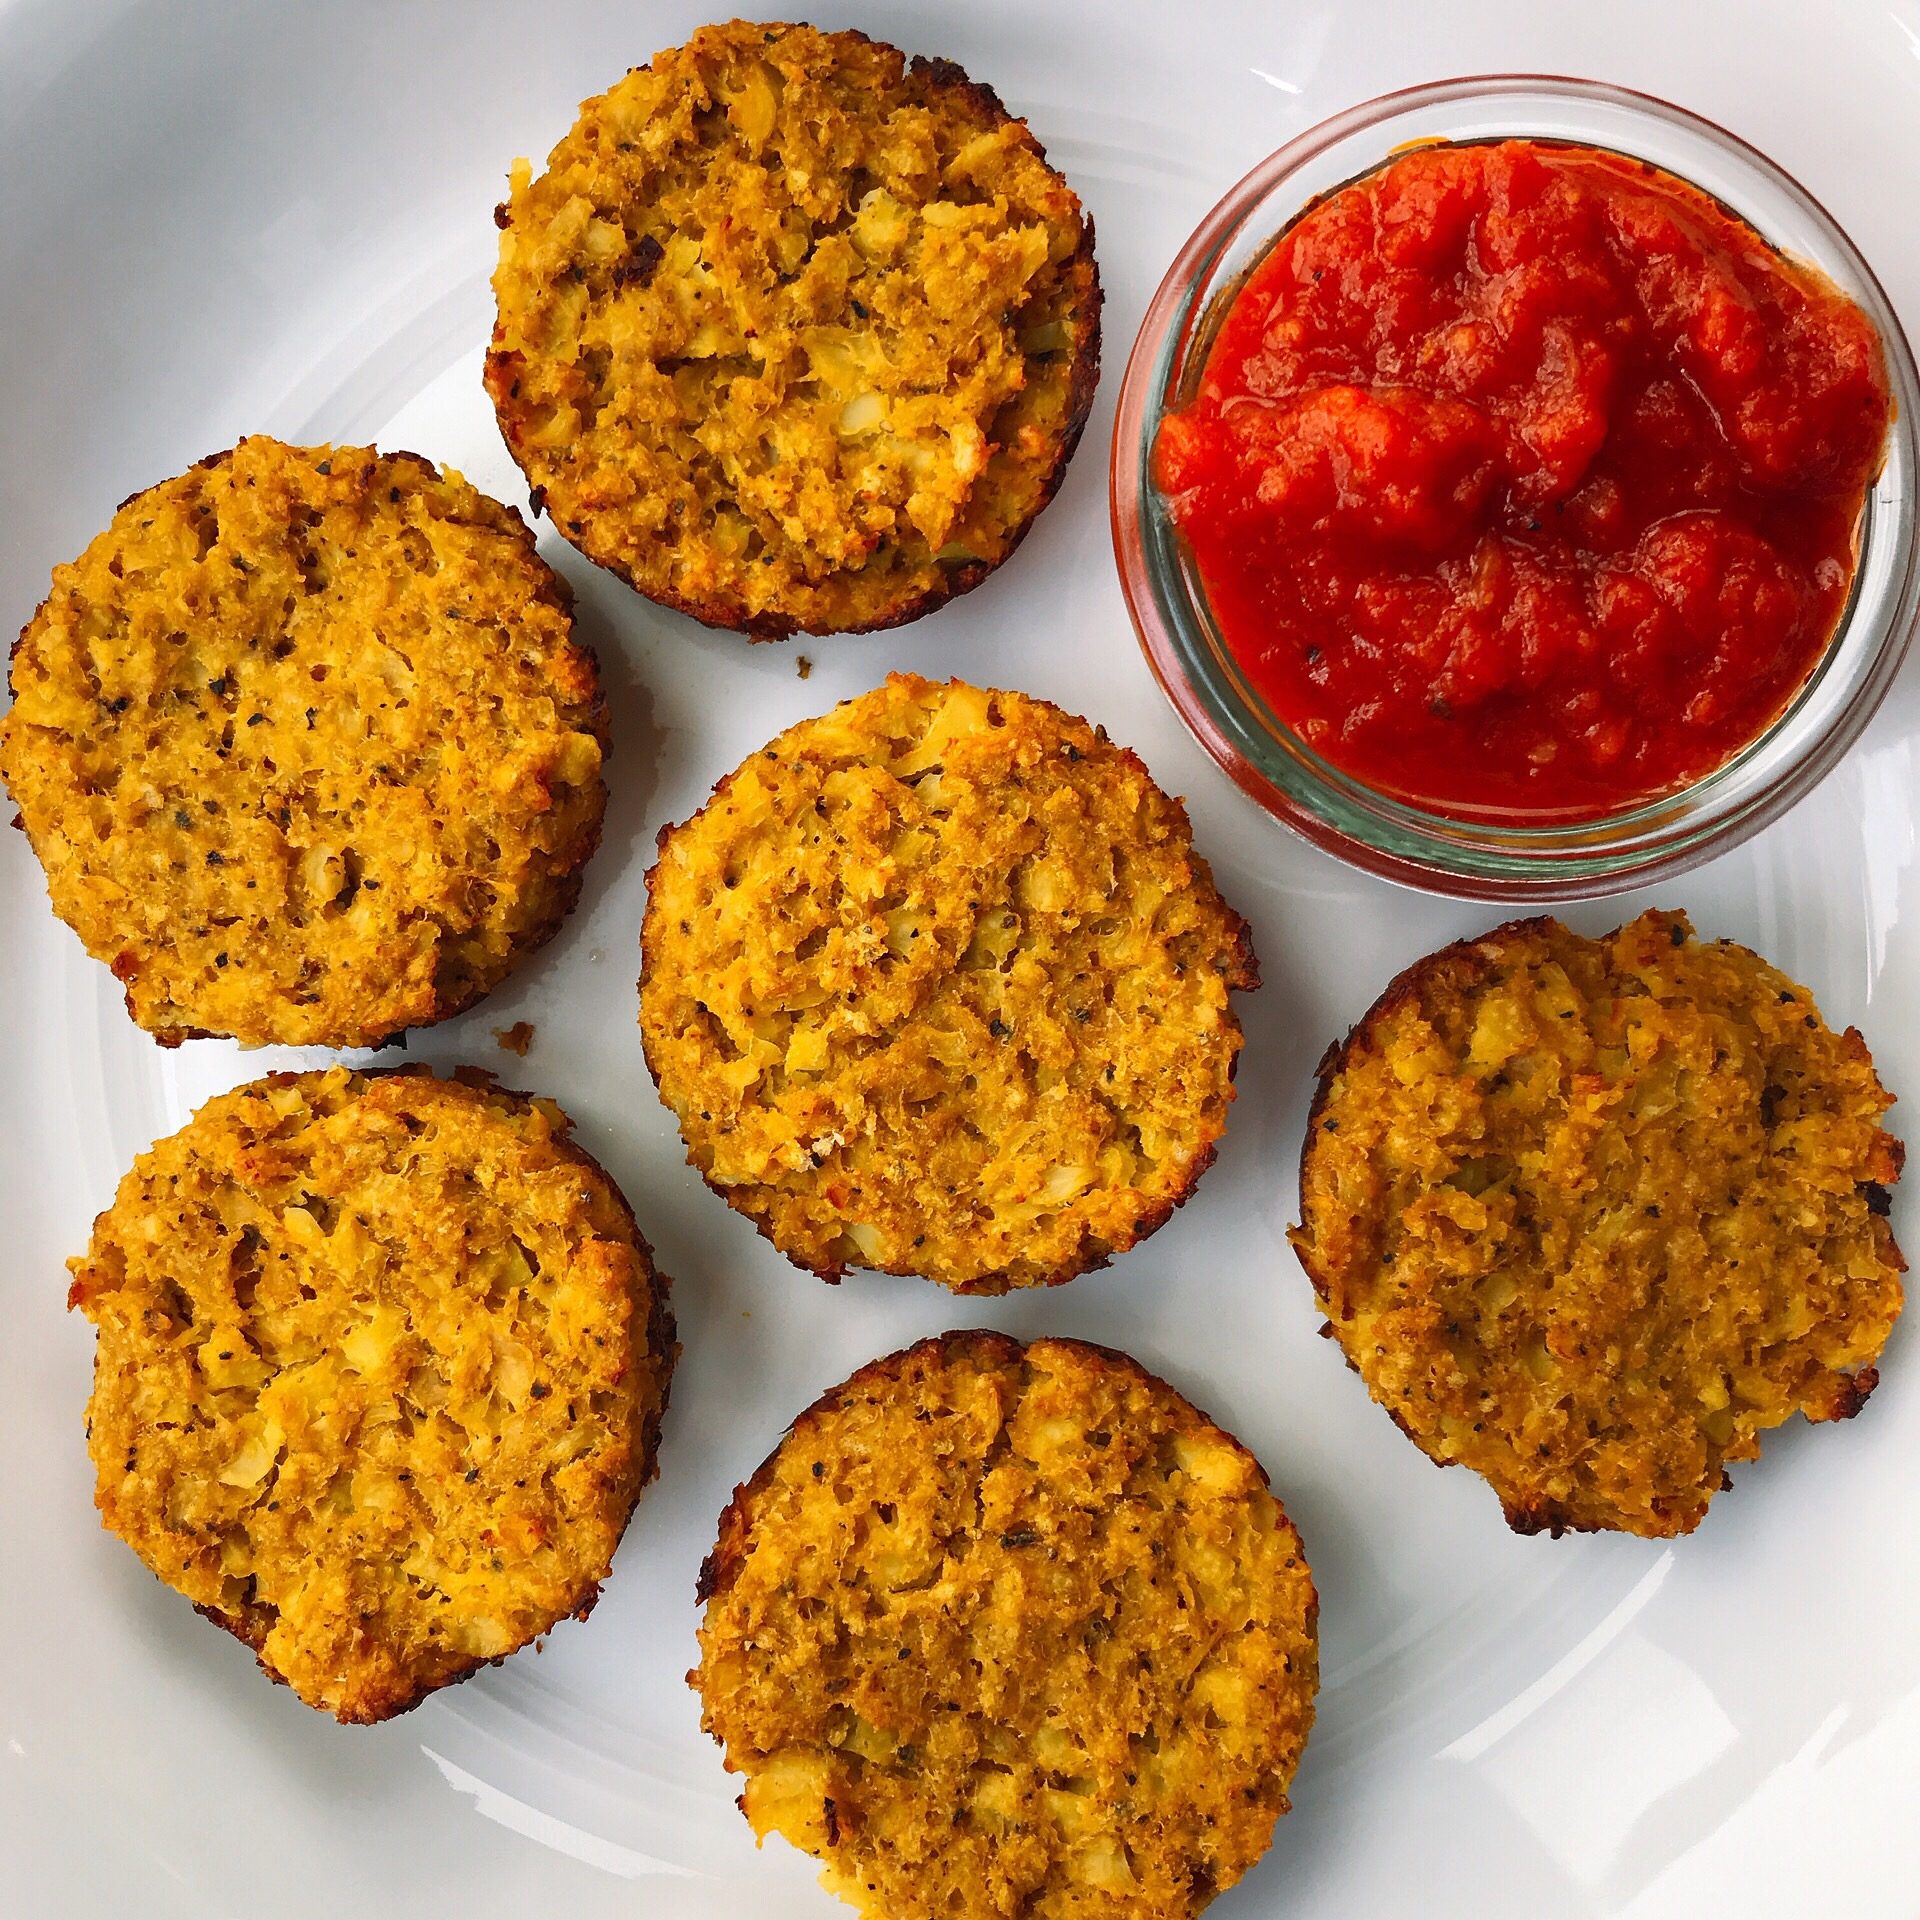 Crispy 'cheesy' cauliflower bites that are completely dairy free, easy to make, and taste like a mix between hash browns and a cauliflower pizza crust. They are so good!